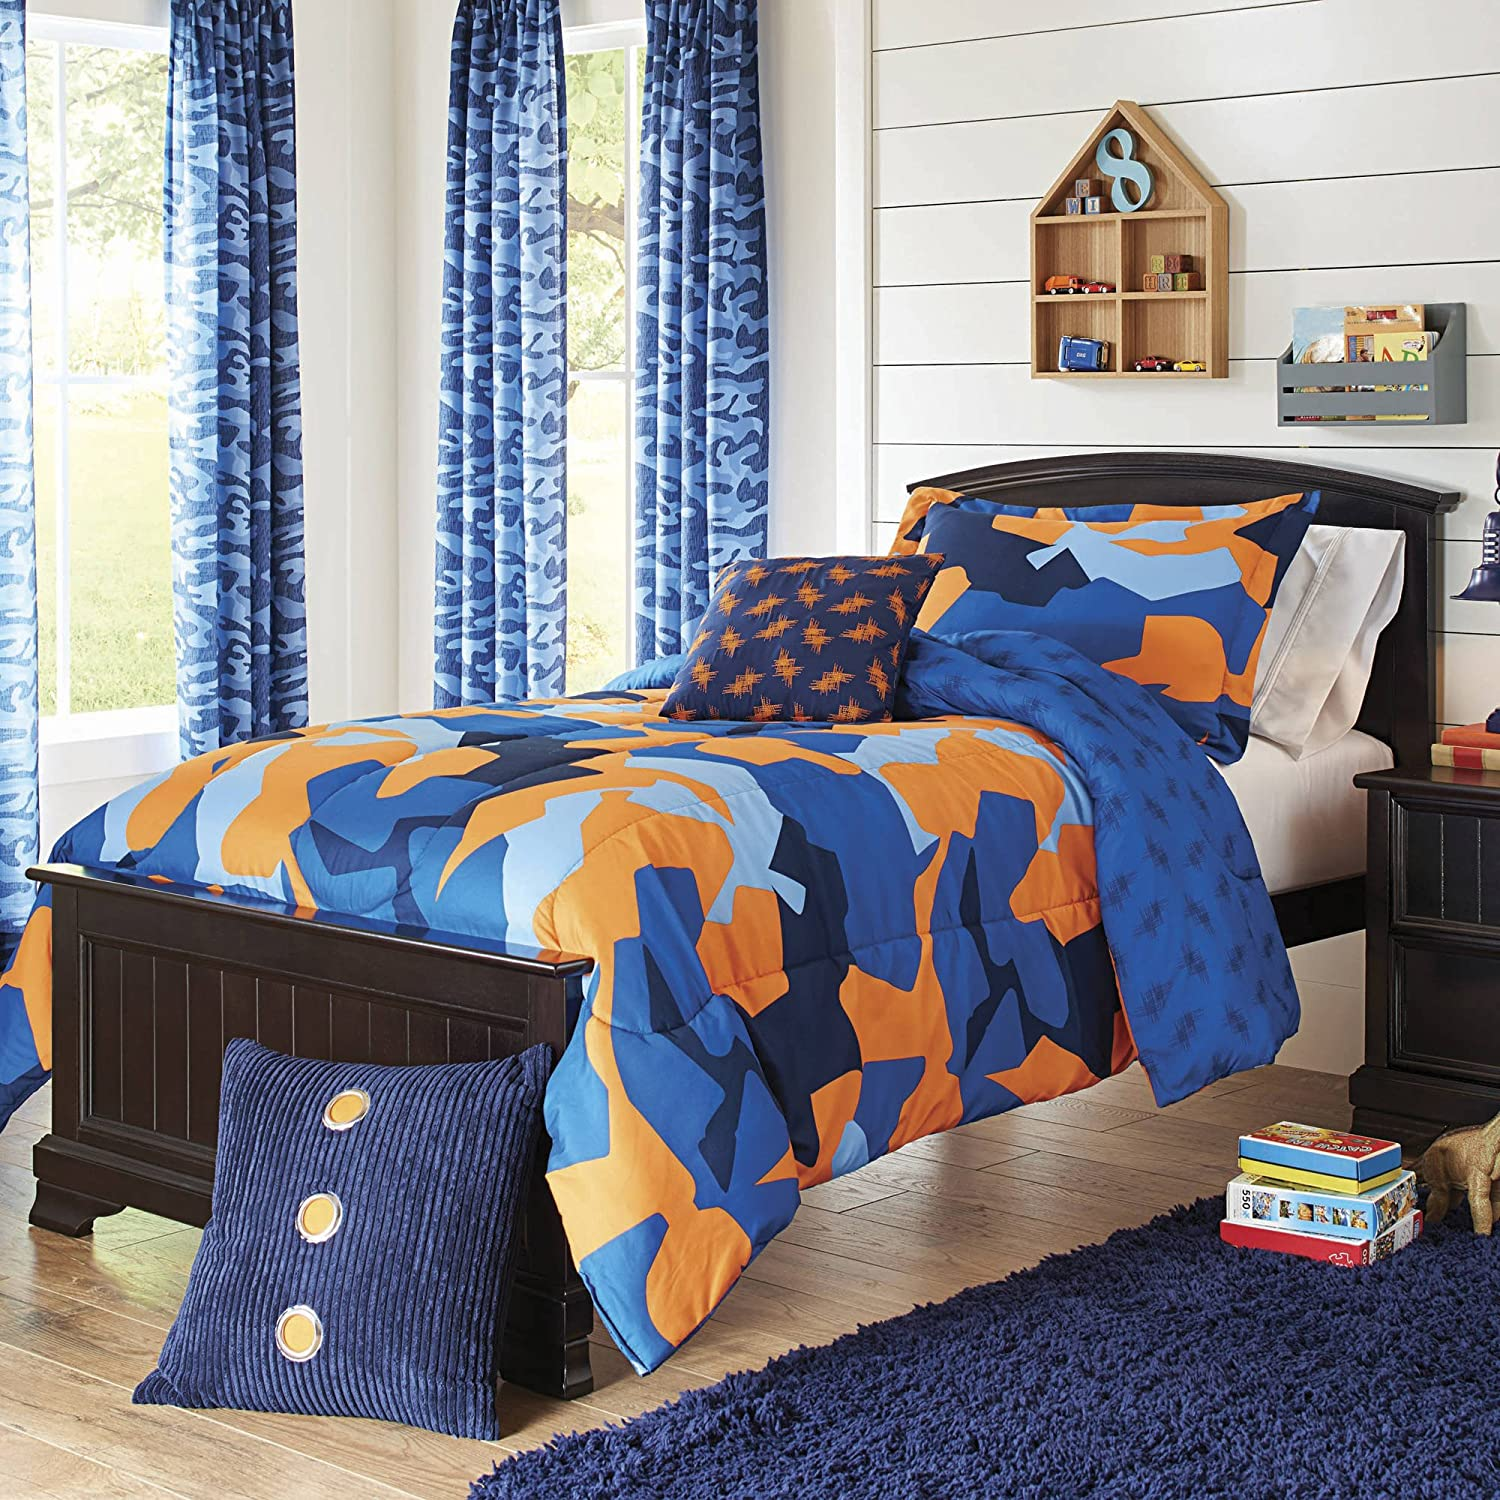 Super Soft and Cute Better Homes and Gardens Kids Camo Navy Bedding Comforter Set, Blue/Orange,Twin/Twin XL